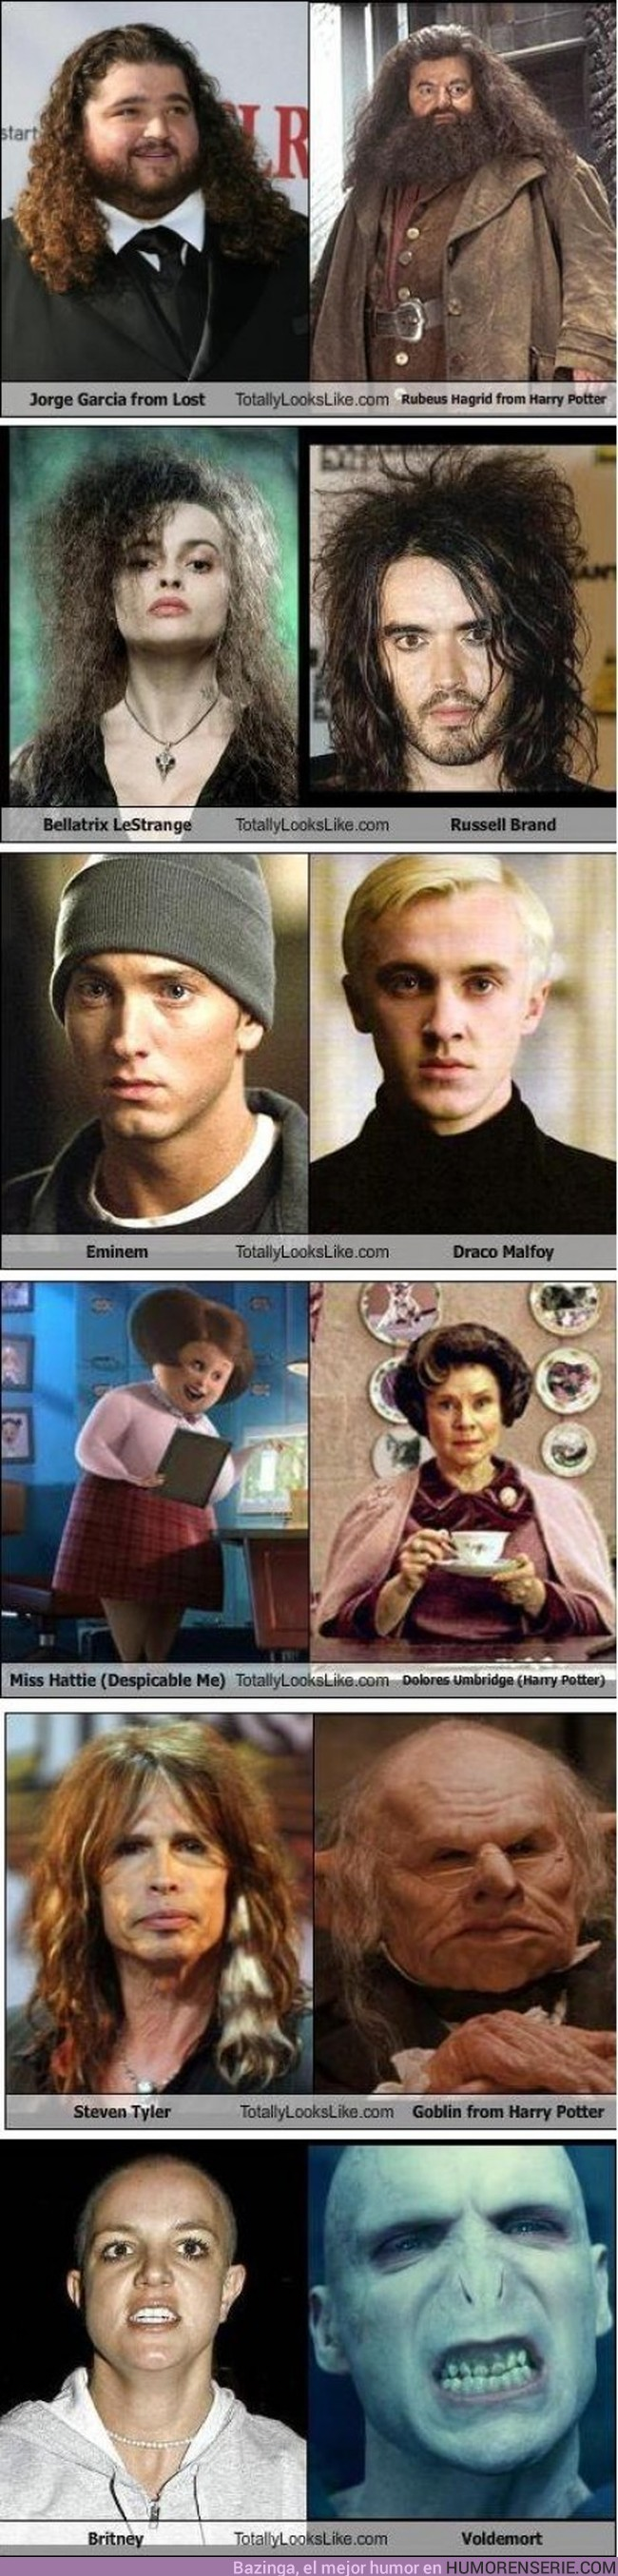 75 - HARRY POTTER - Y sus extrañas similitudes